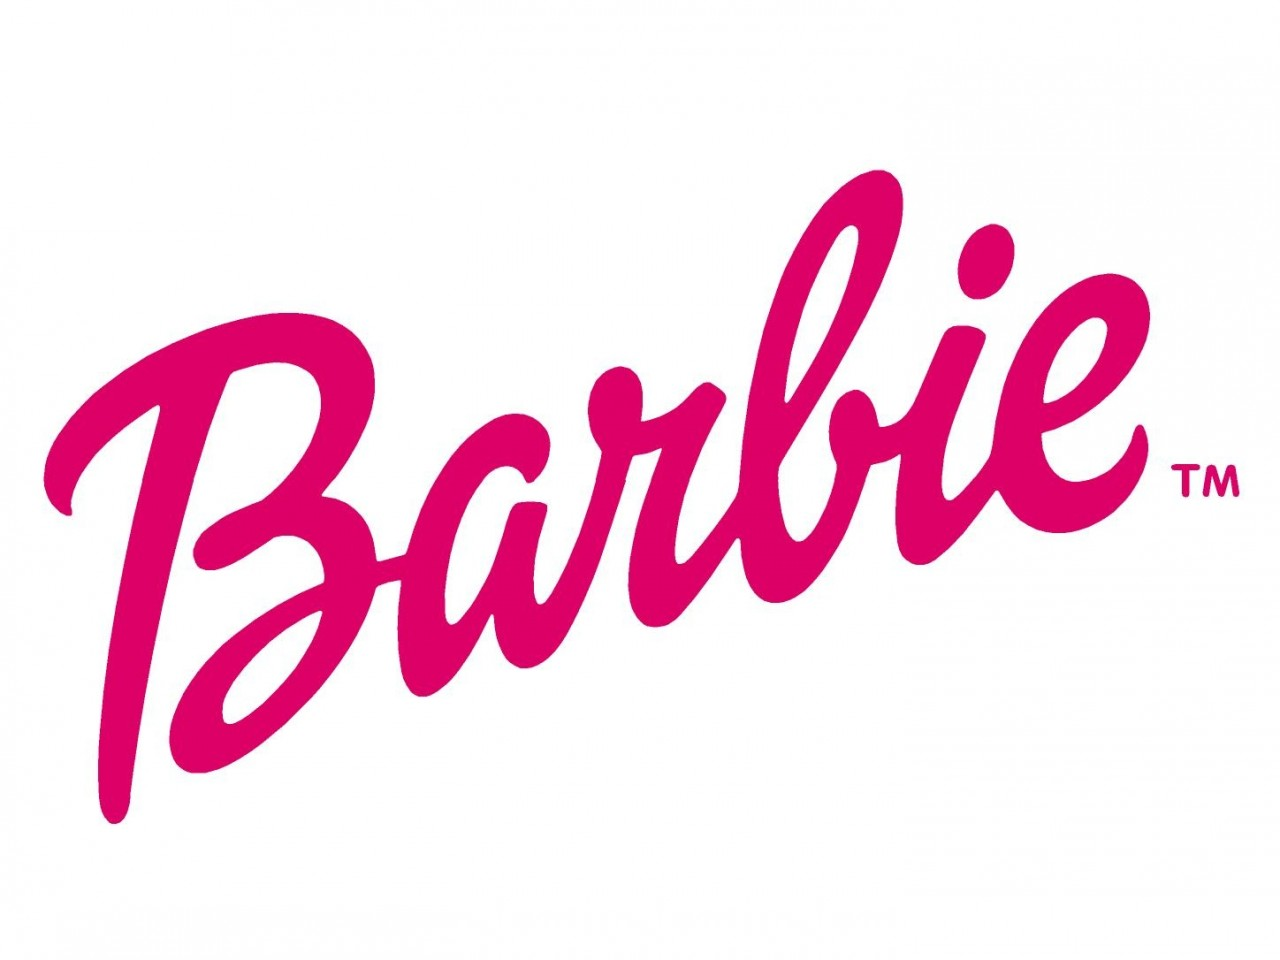 barbie head logo wallpaper Pics For Barbie Logo Wallpaper Pink